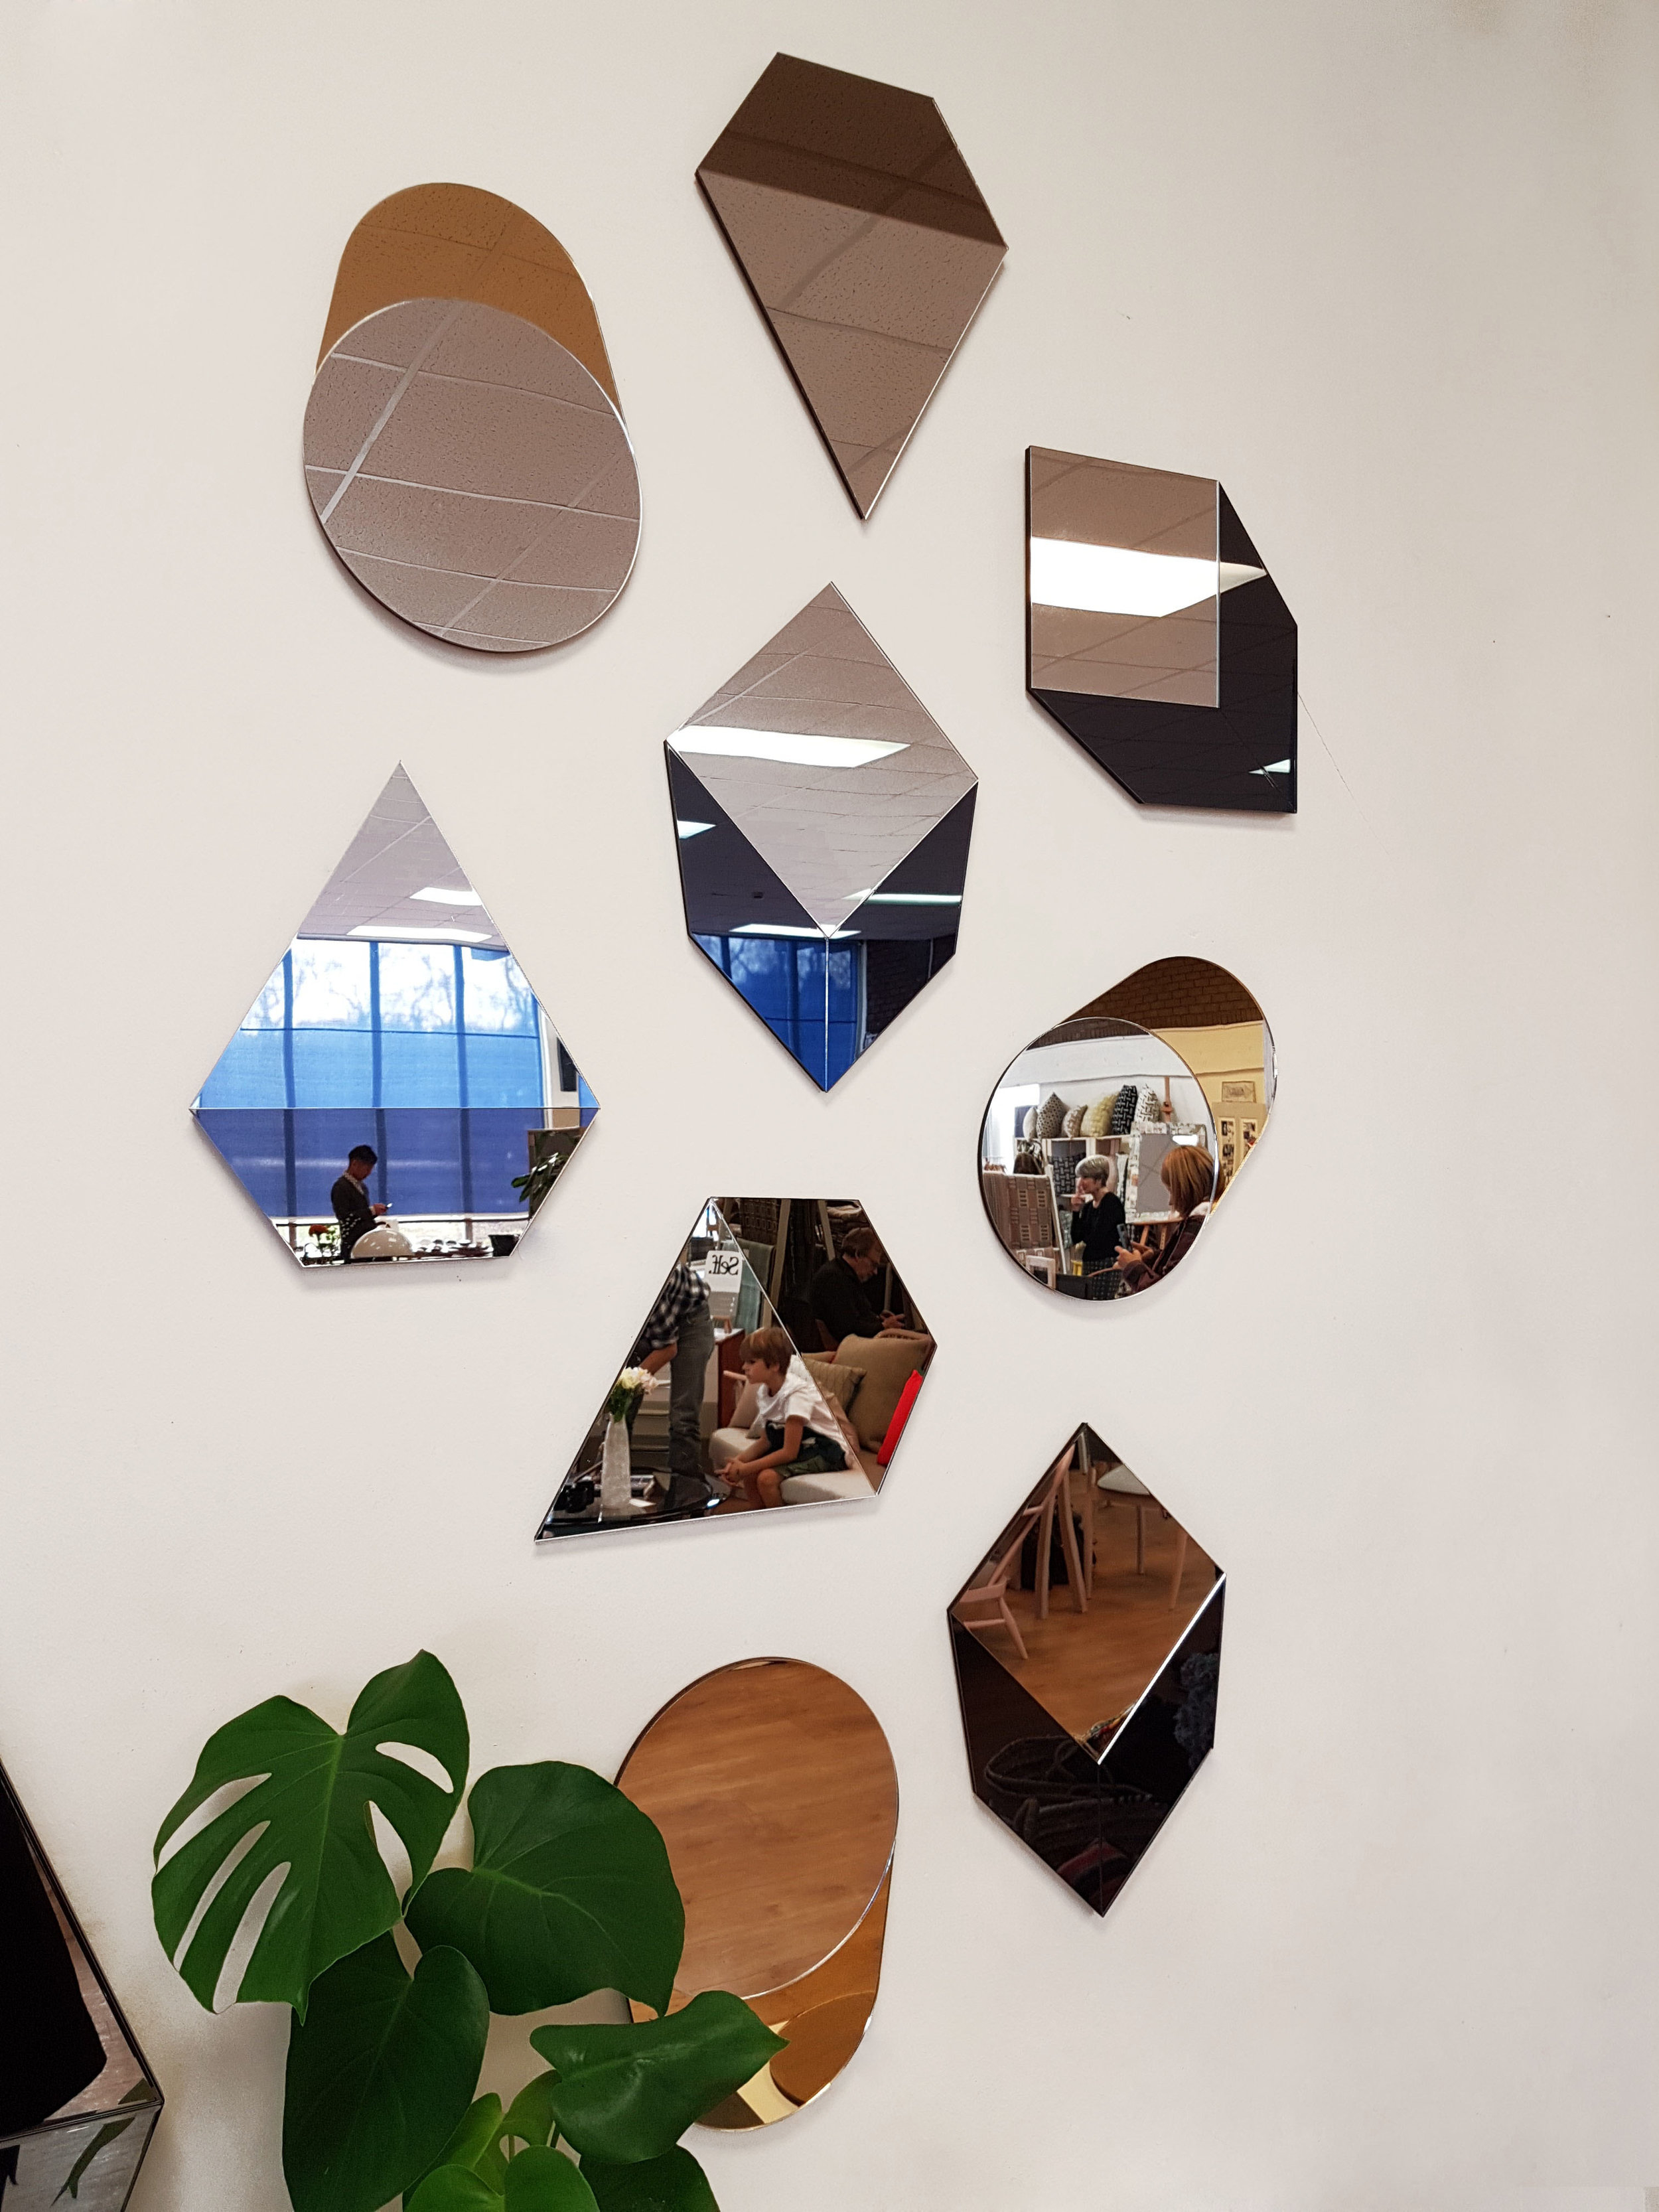 GEO MIRRORS - Mirror wall created from the GEO Mirror Collection, Prism, Cube and Cylinder are hung from one of three keyhole hangers to transform the metallic gallery wall design.